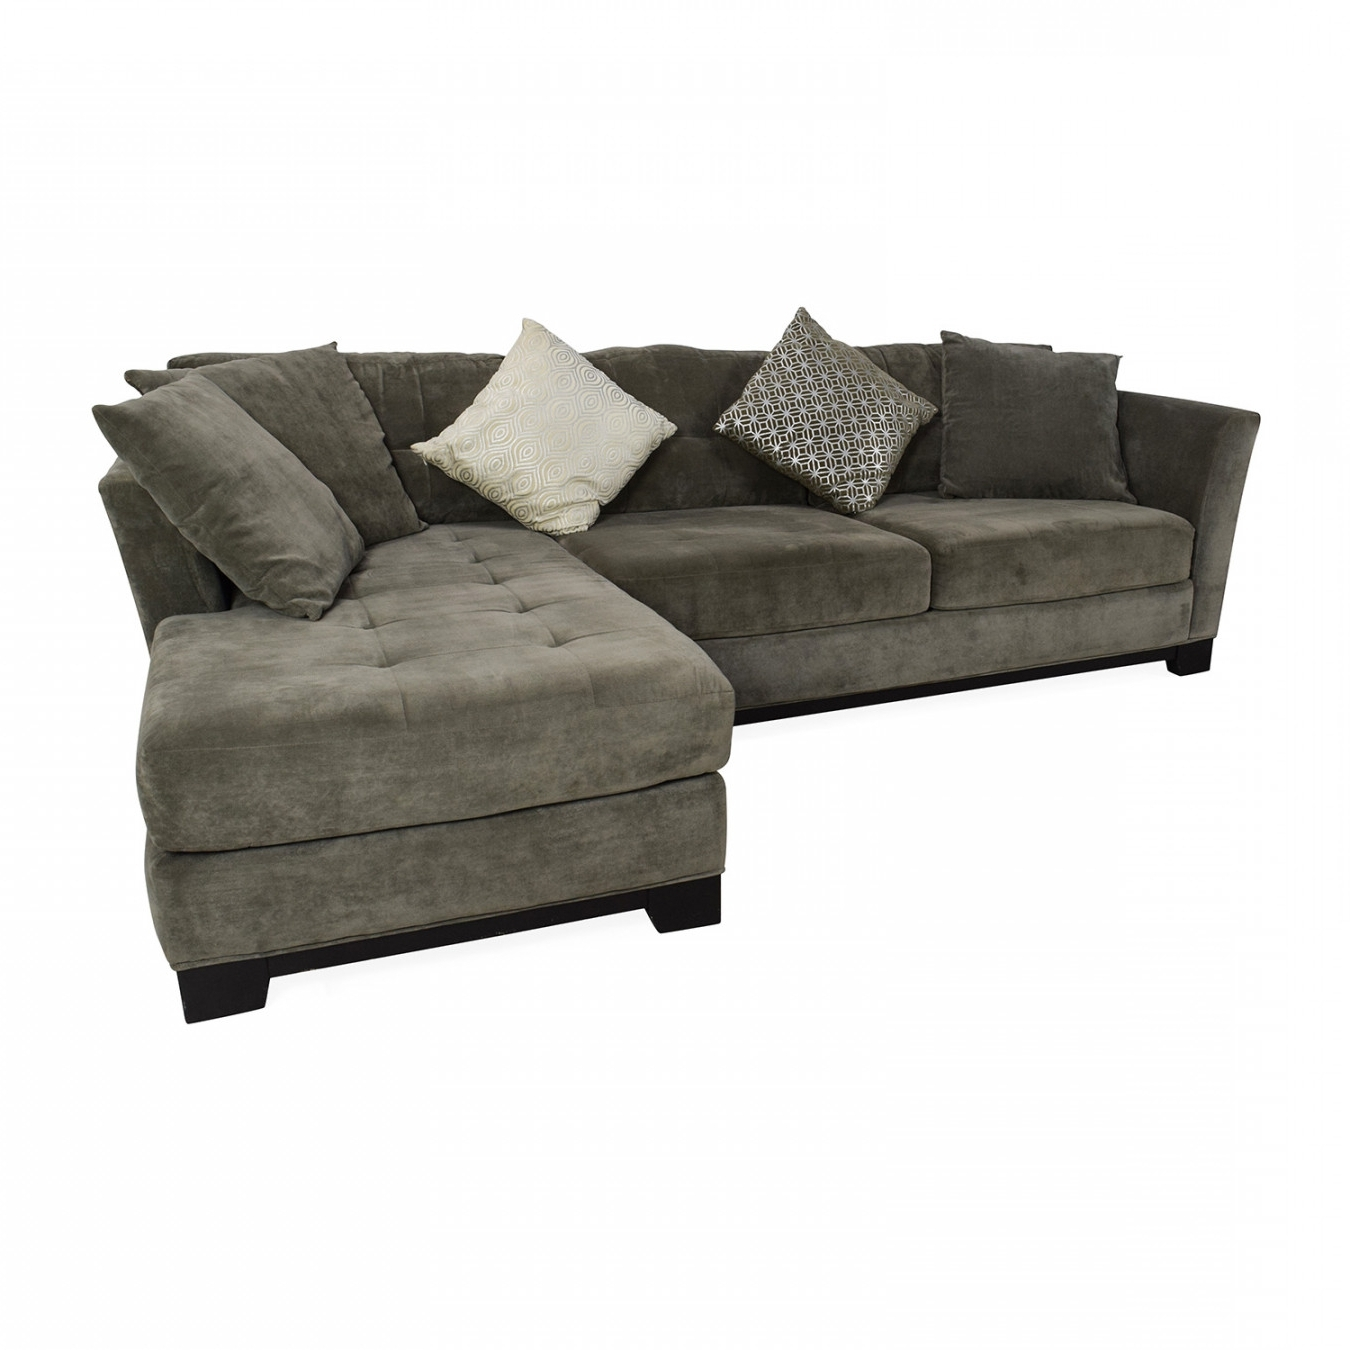 Best And Newest Sofas: Oversized Sectional With Chaise (View 4 of 15)